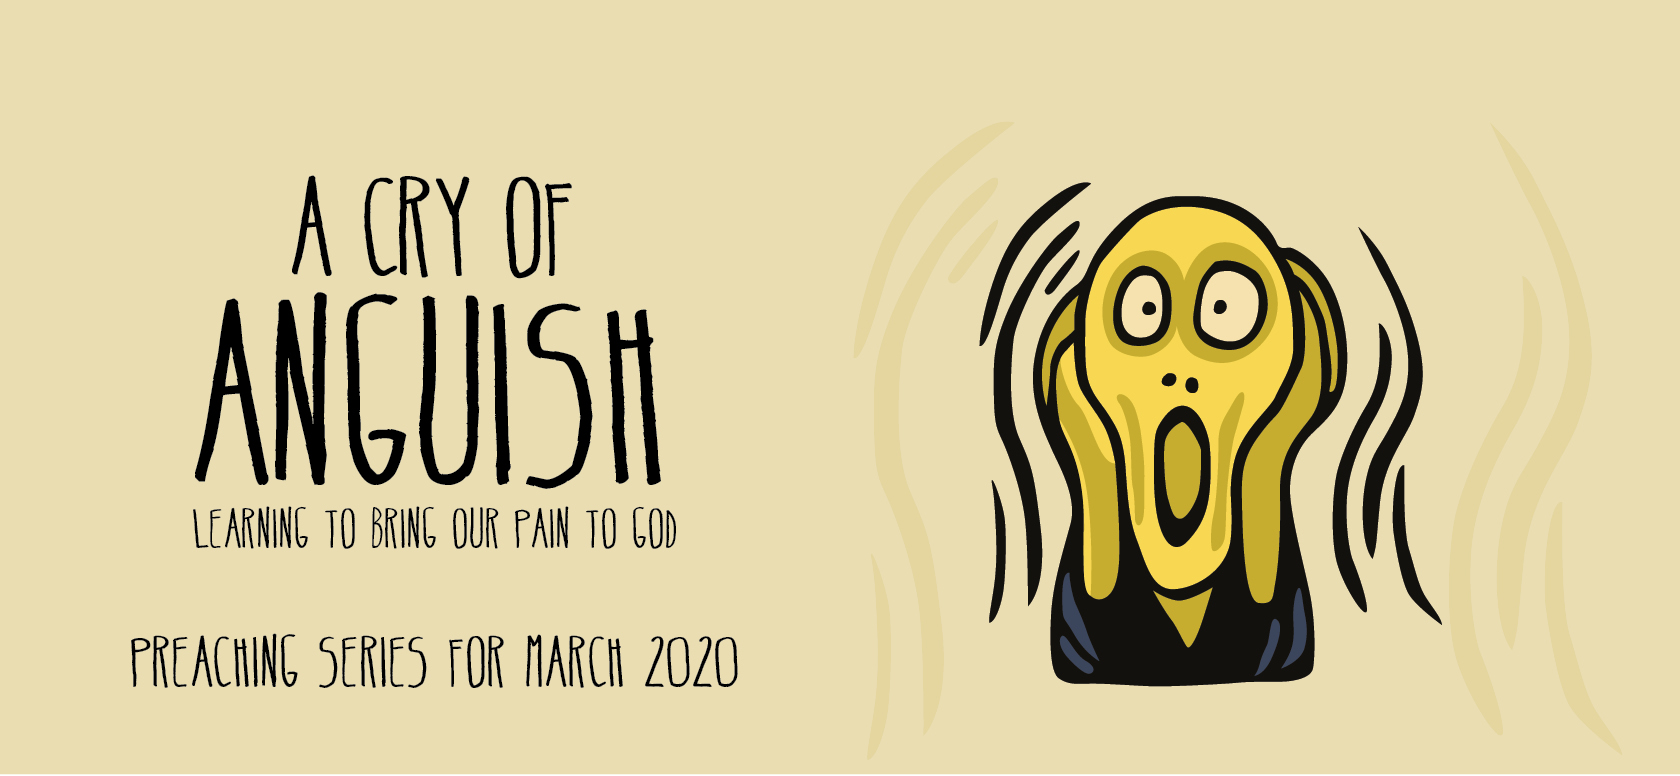 Cry_of_Anguish_Web-Banner_1680x776